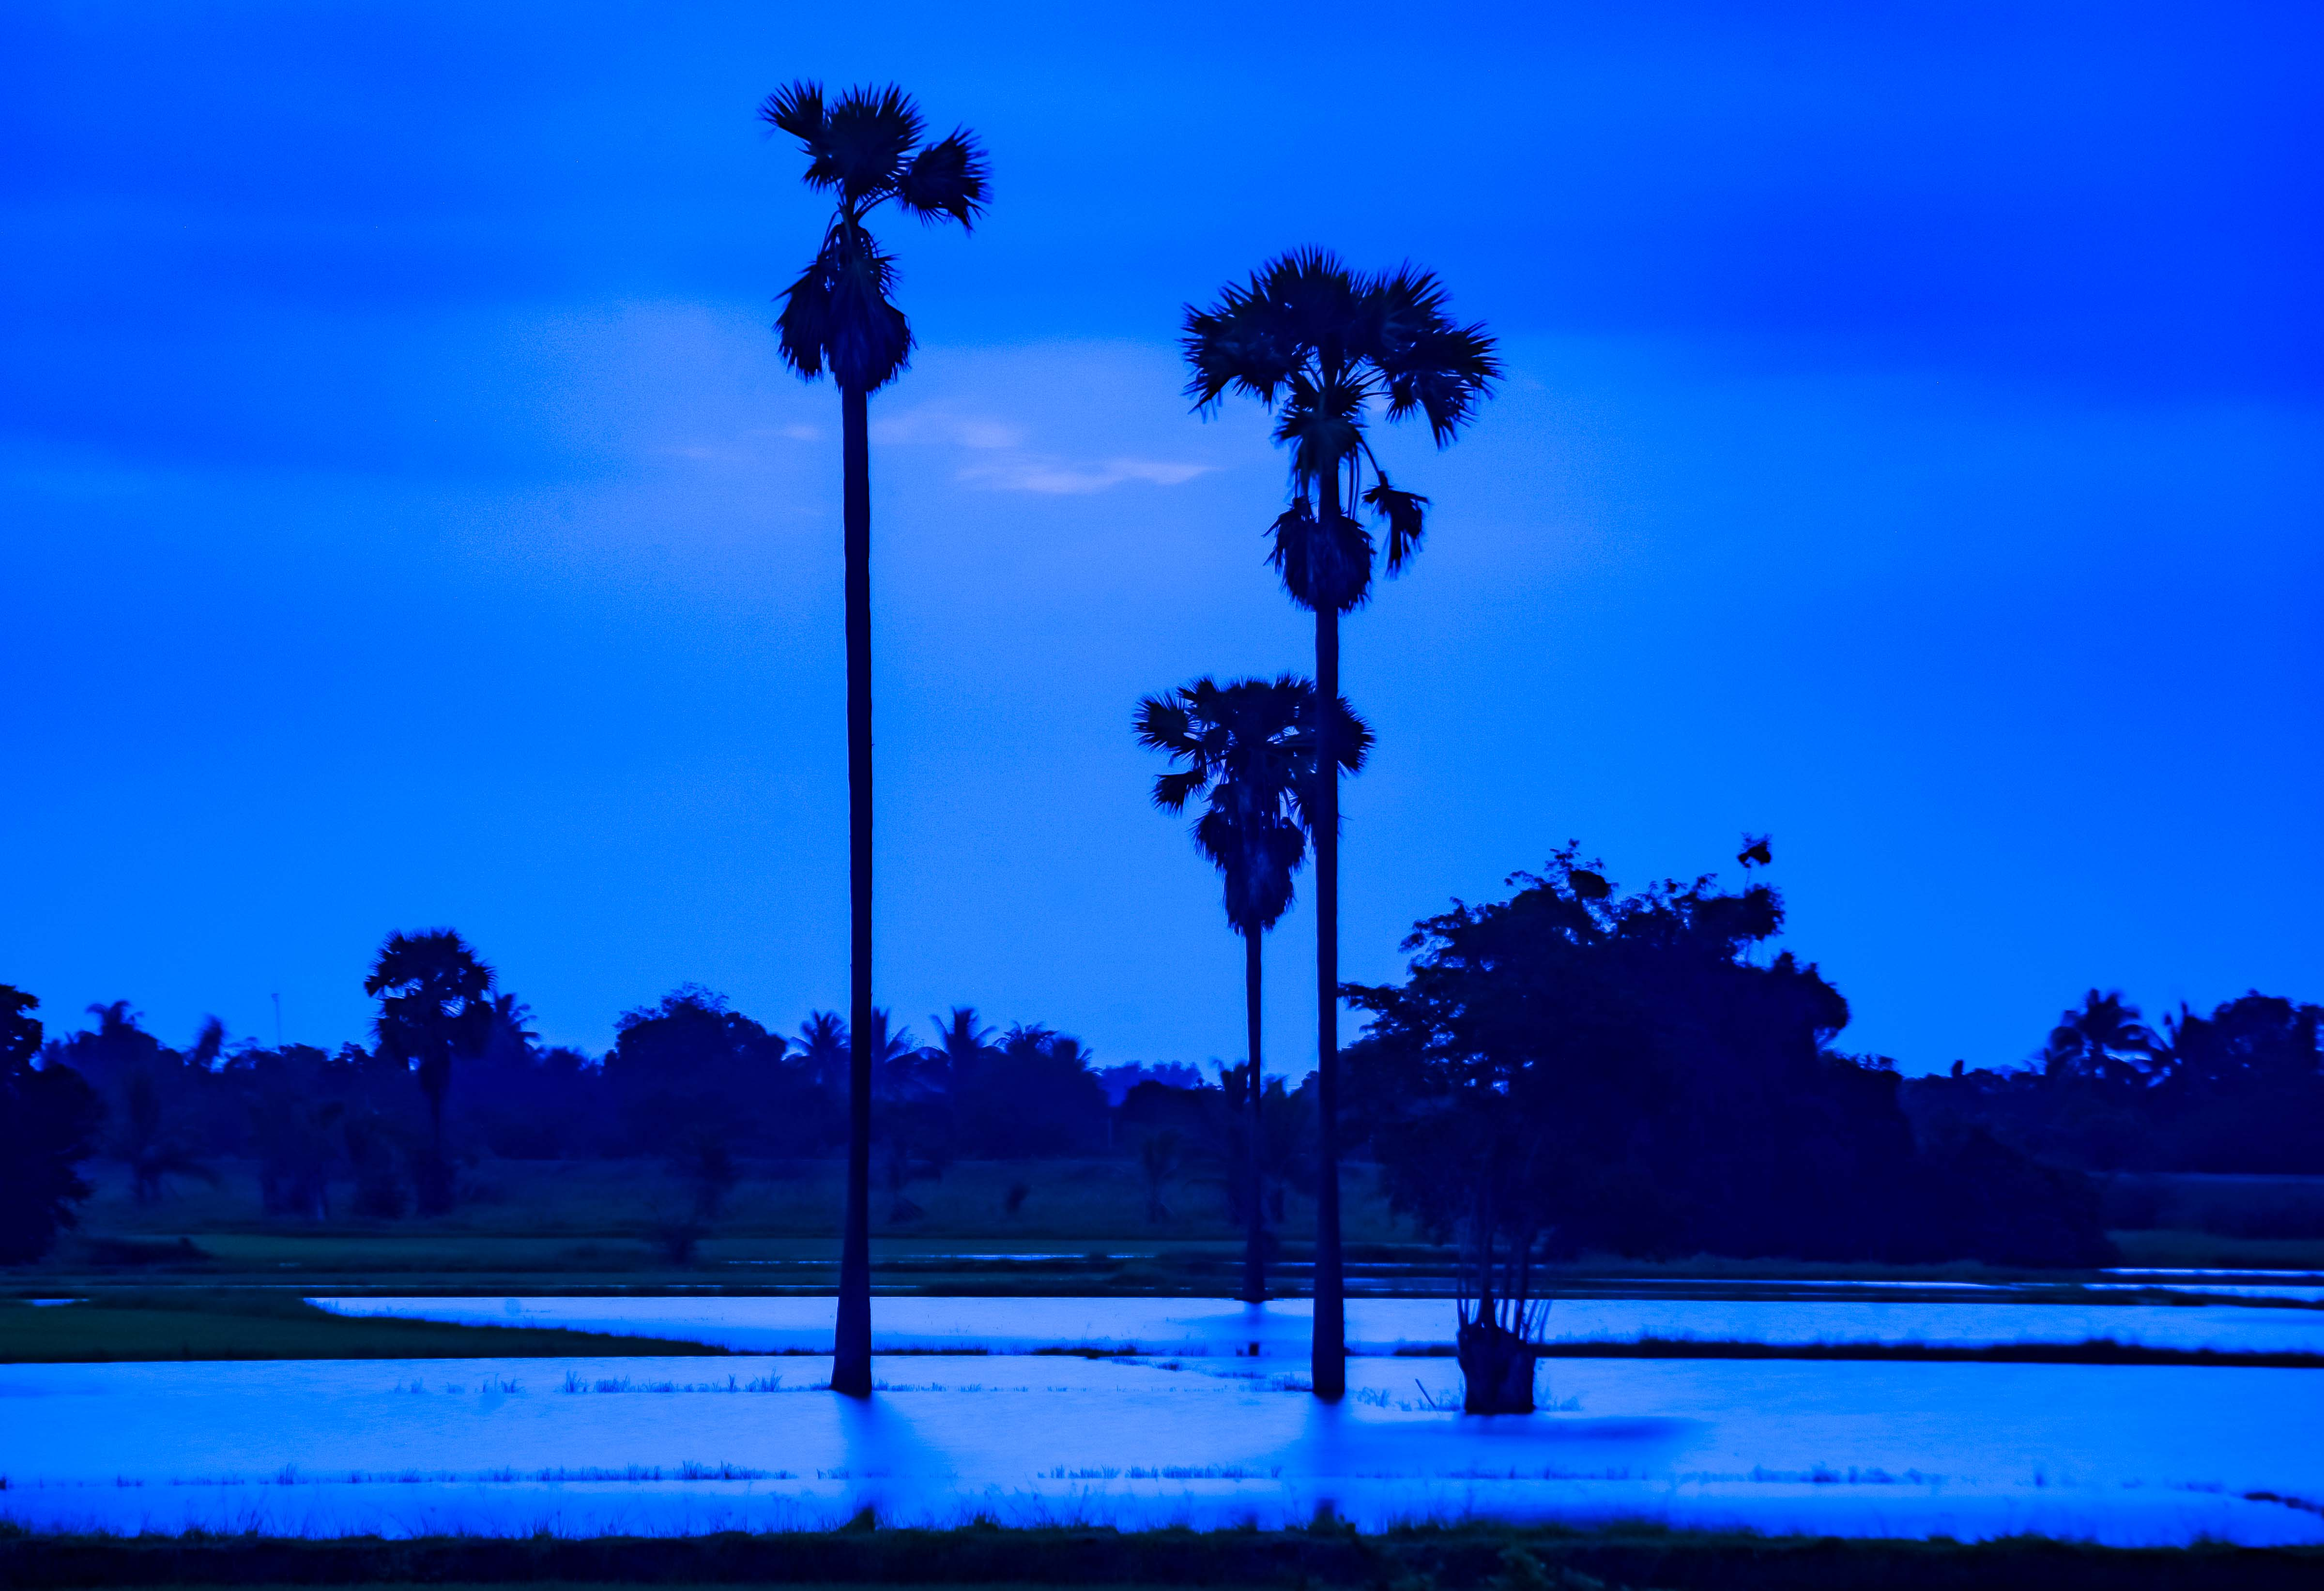 Thailand, Chai Nat Province, Palm Trees In Water, 2008, IMG_3158